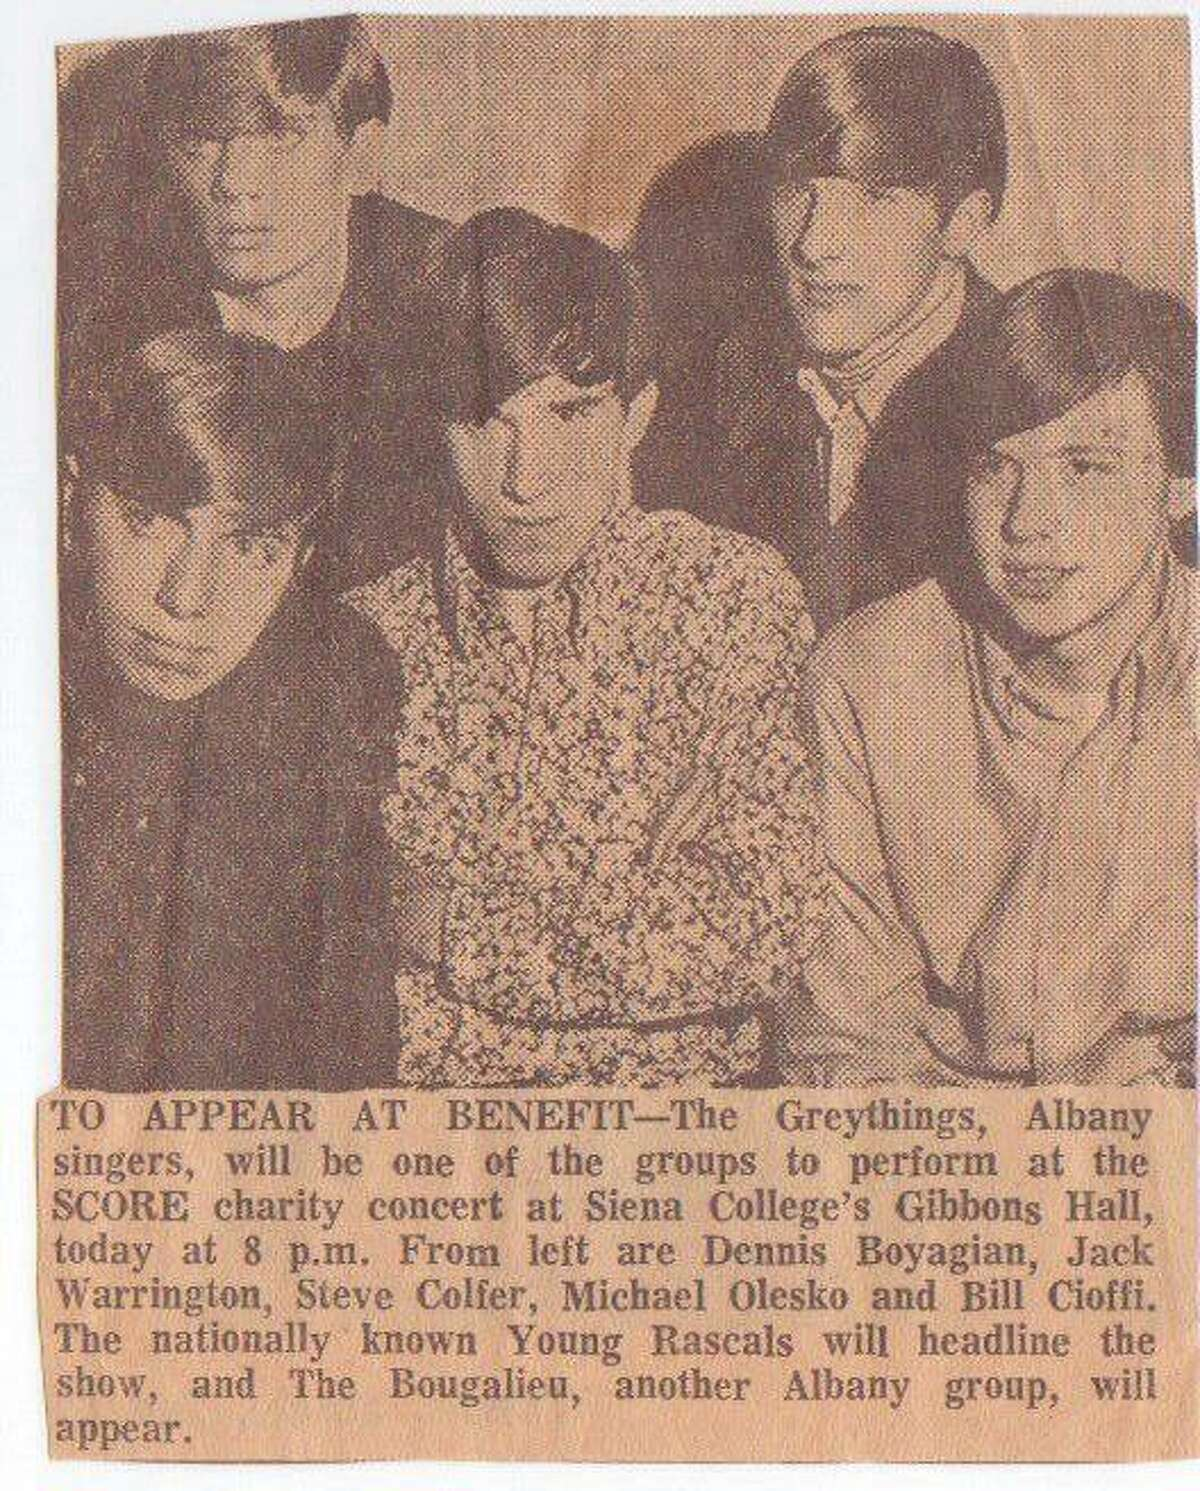 A clip from the Times Union on the Gray Things Facebook page shows the band in 1967.